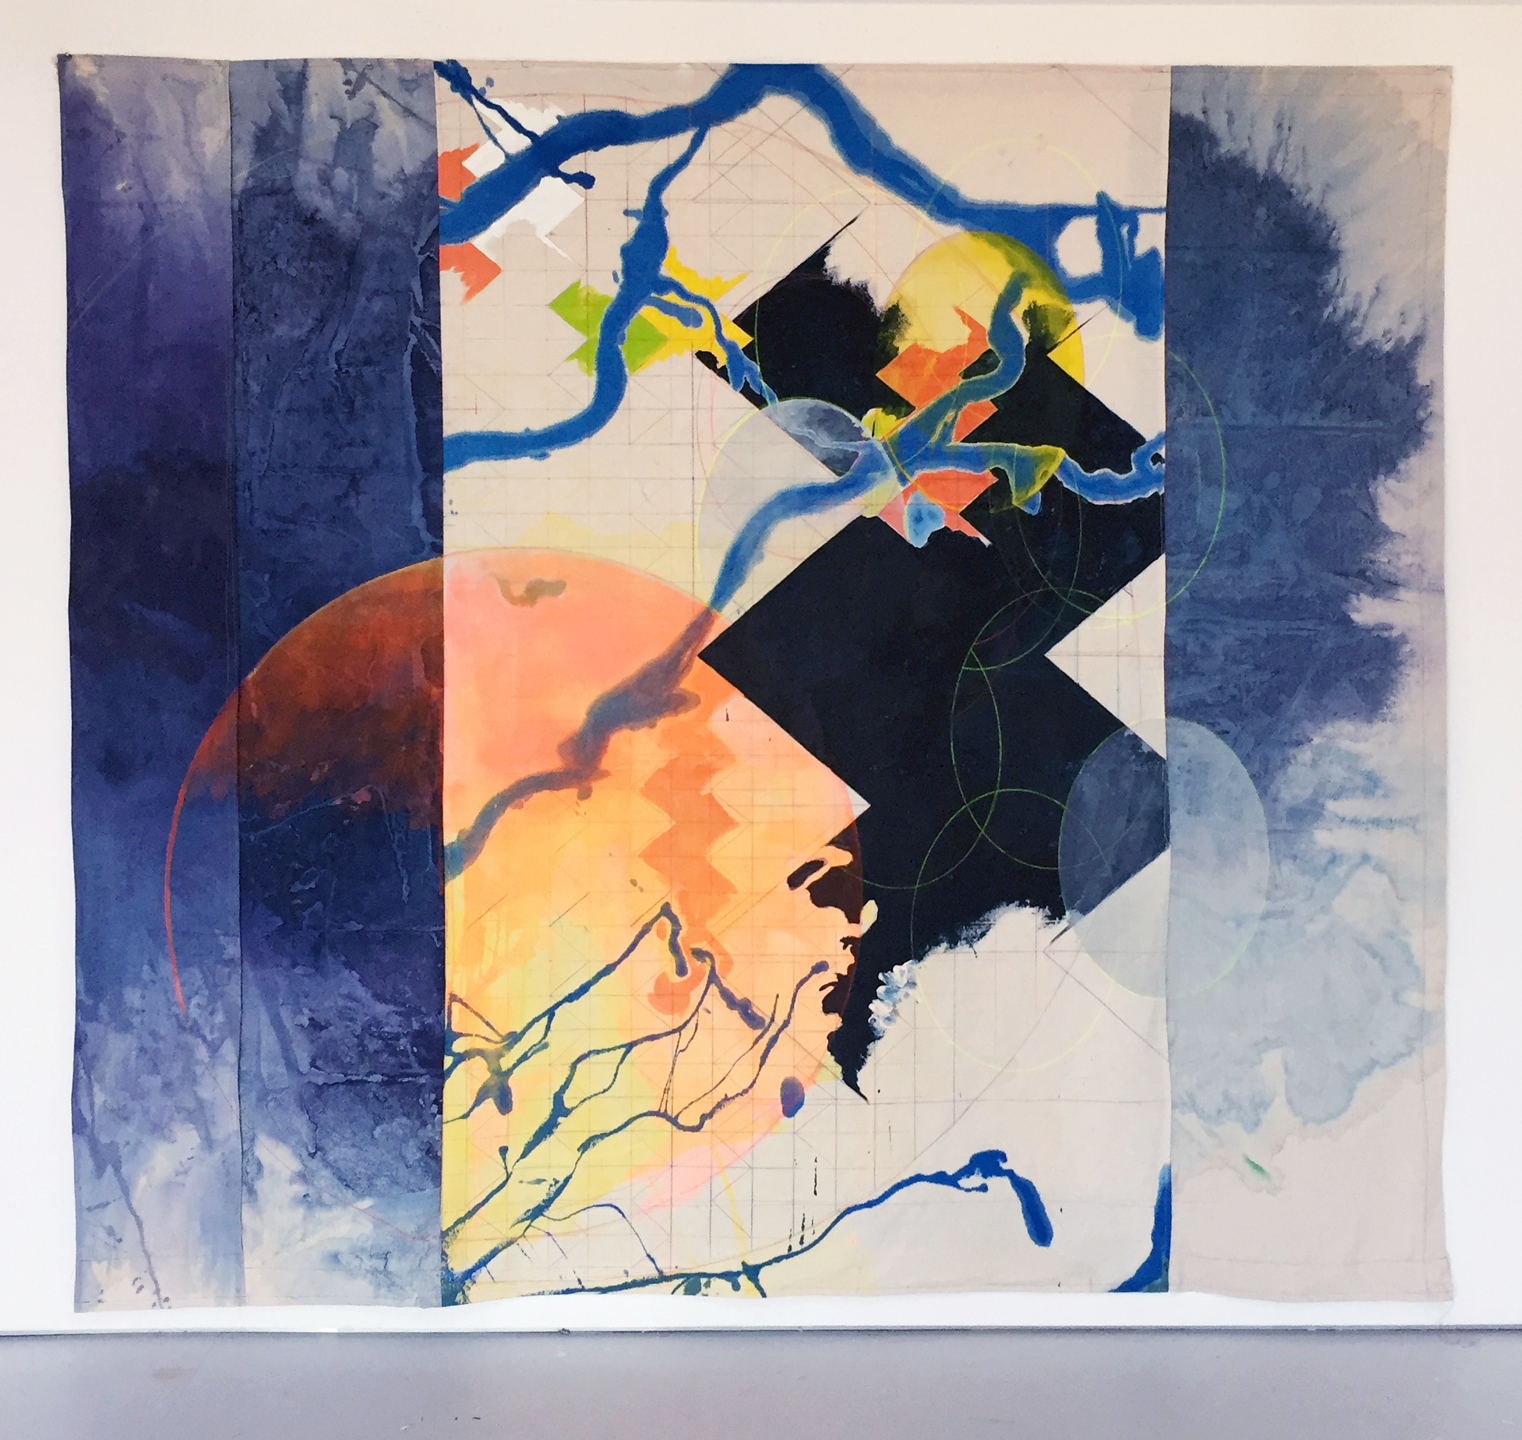 Anne Sherwood Pundyk, Being Blue, 2018, Acrylic, Latex, Colored Pencil Stitching on Canvas, 90 x 100 inches